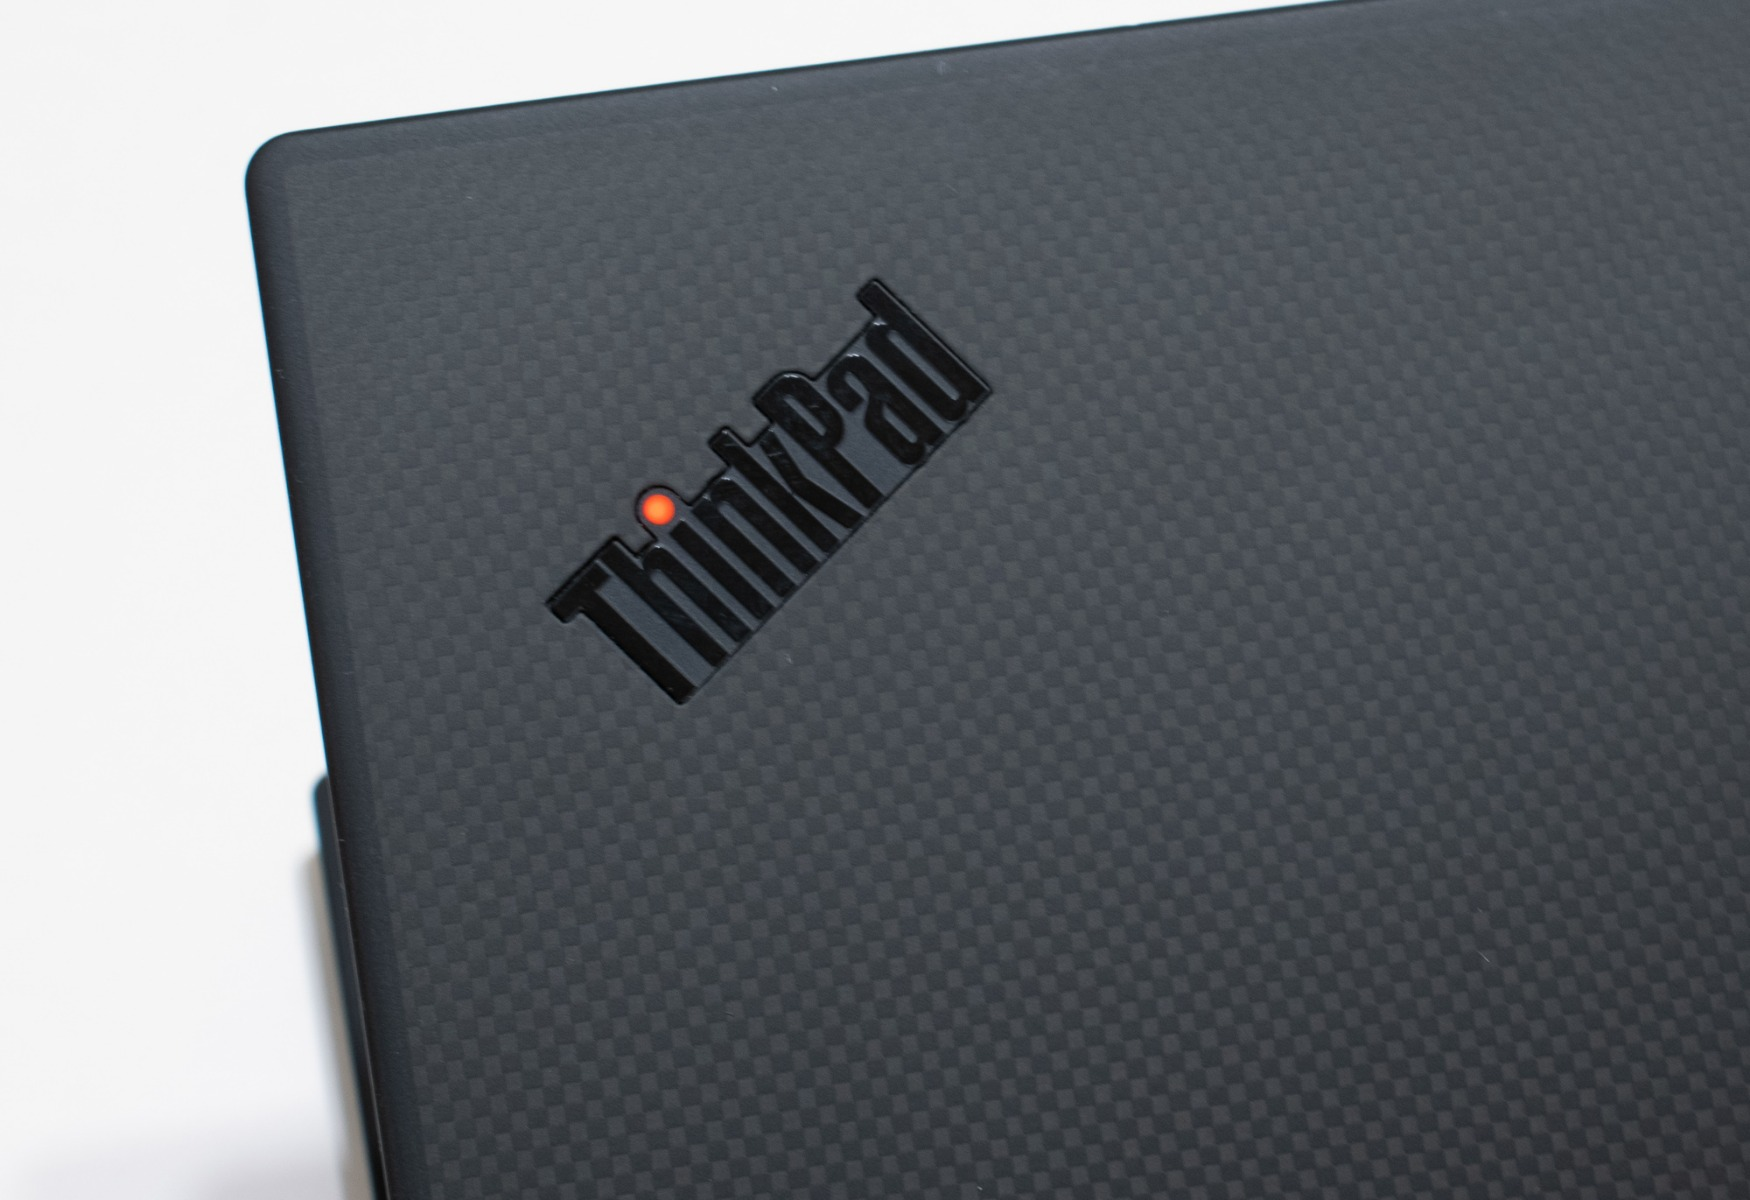 ThinkPad X1 Carbon Review: Lenovo's 7th Gen Flagship Impresses